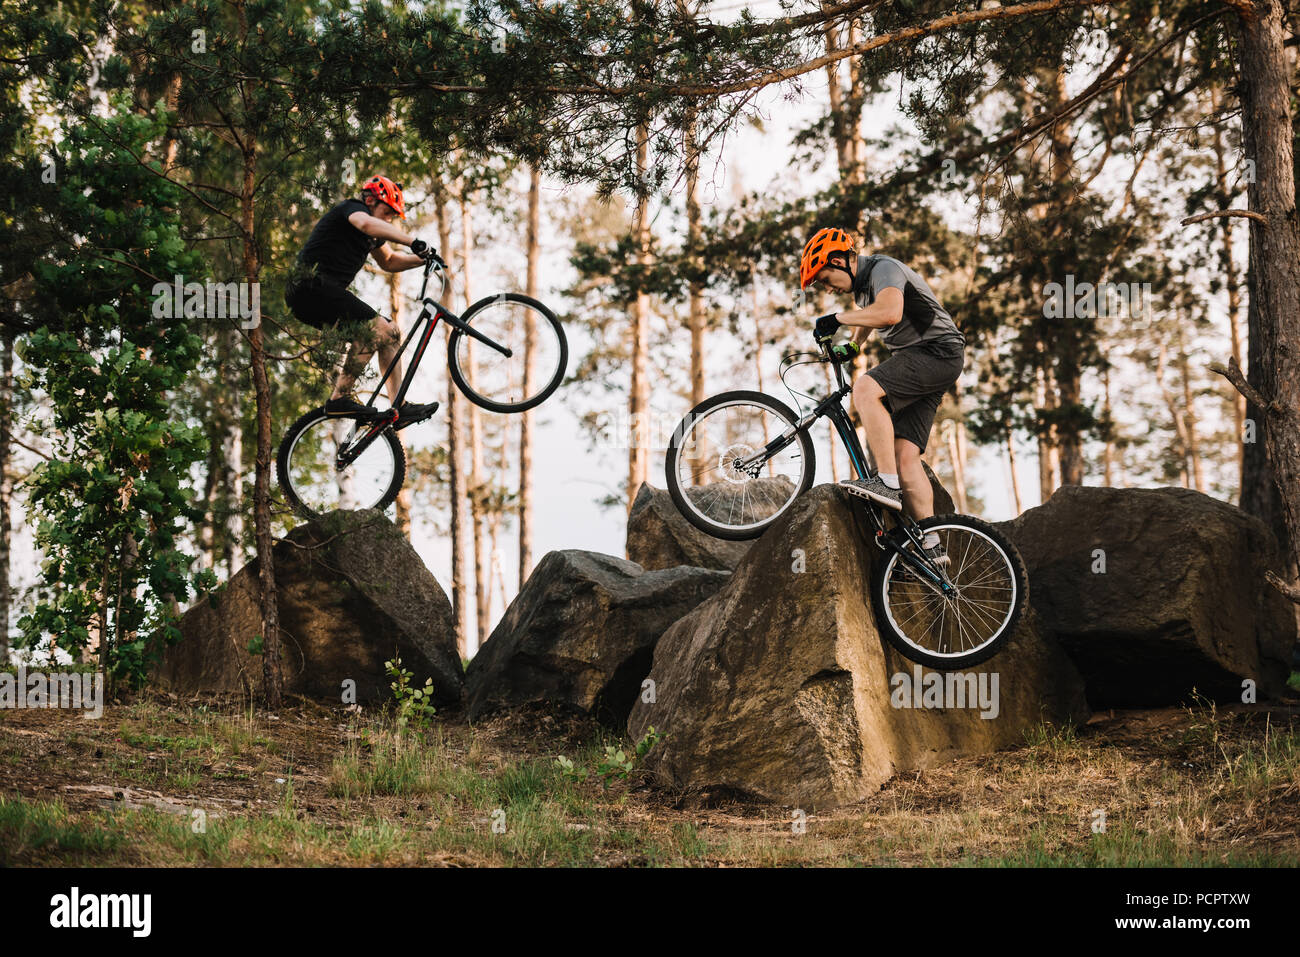 extreme trial bikers performing stunts on rocks outdoors Stock Photo